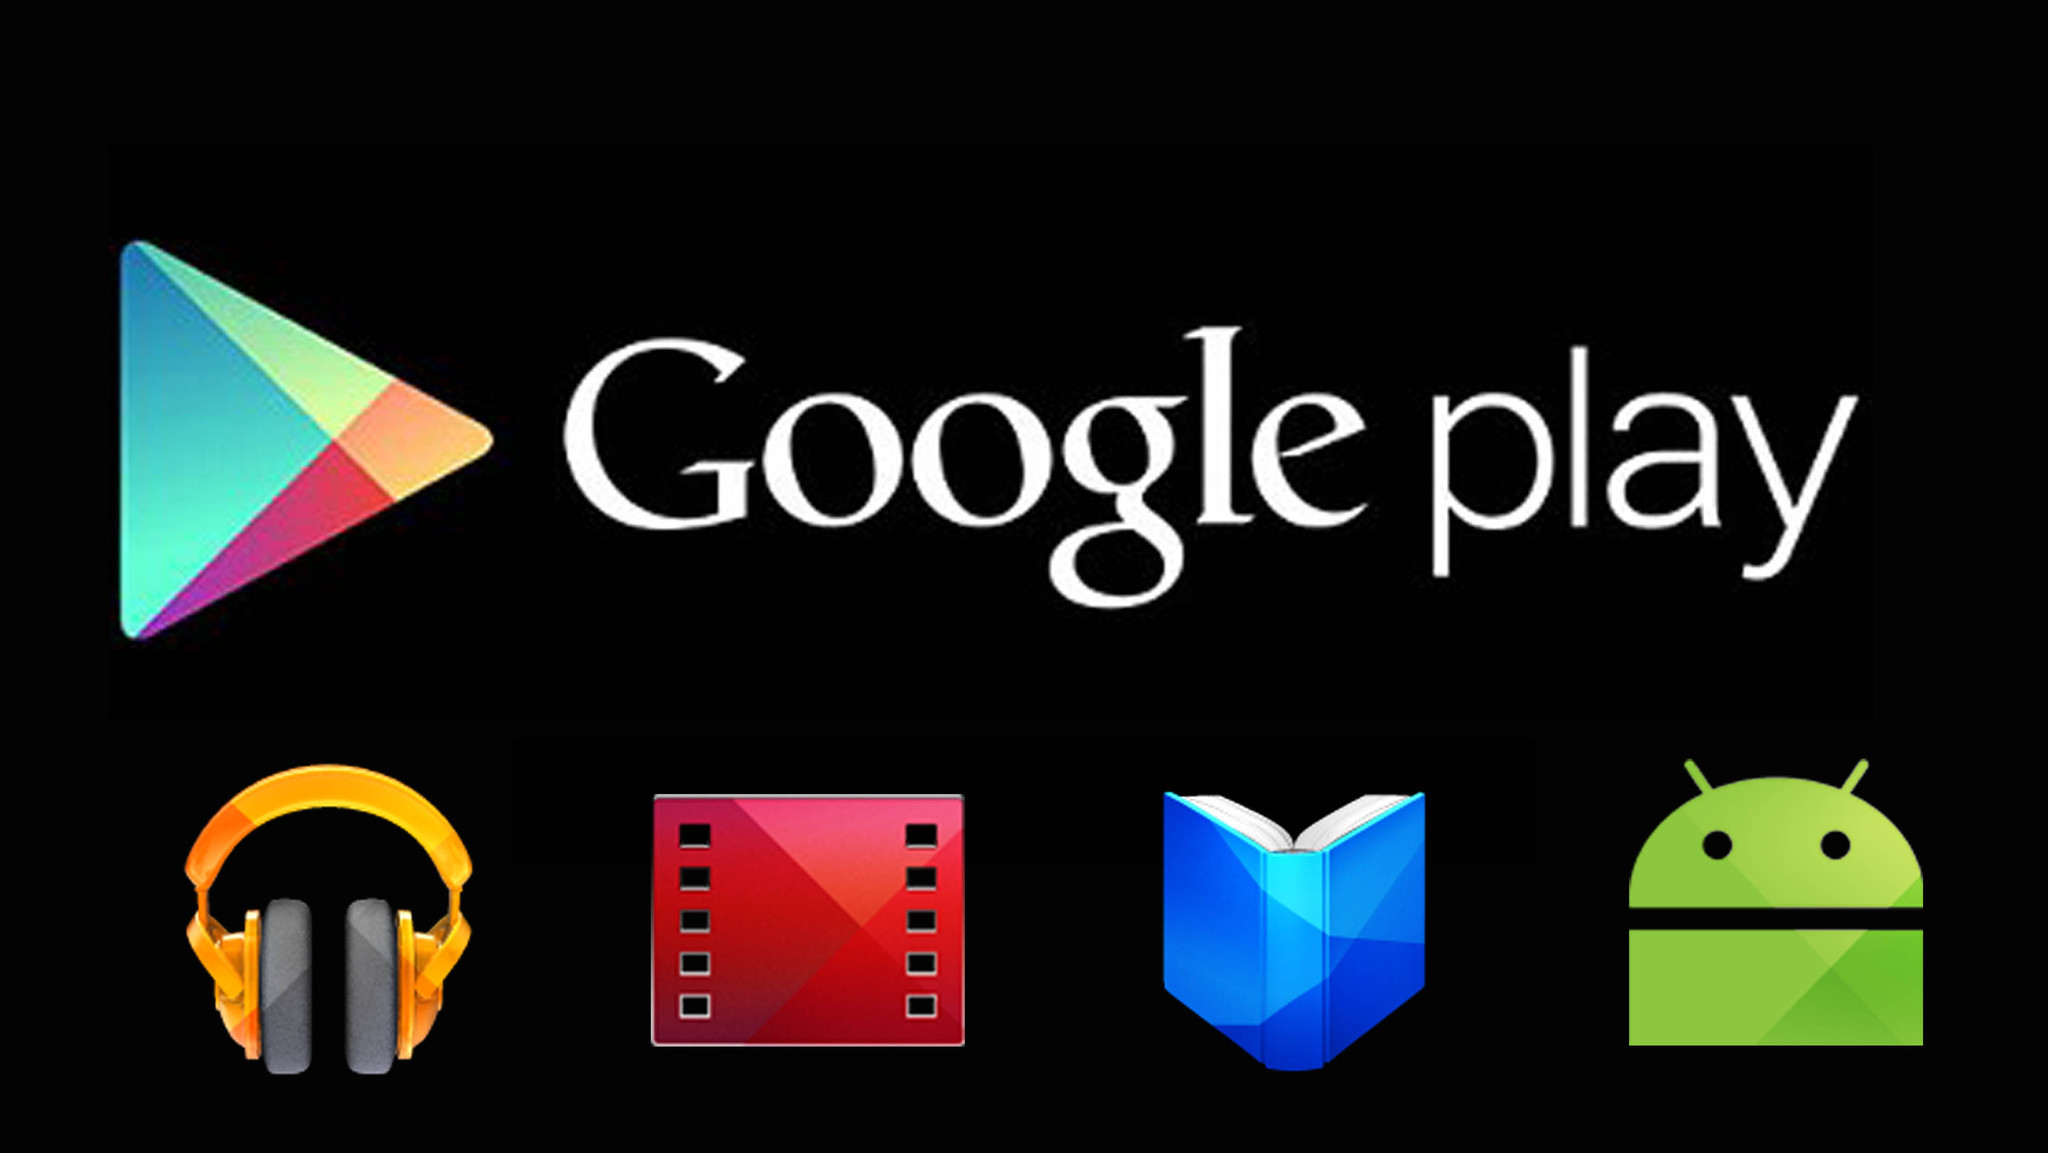 The Google Play store came in fourth among the top ecommerce sites